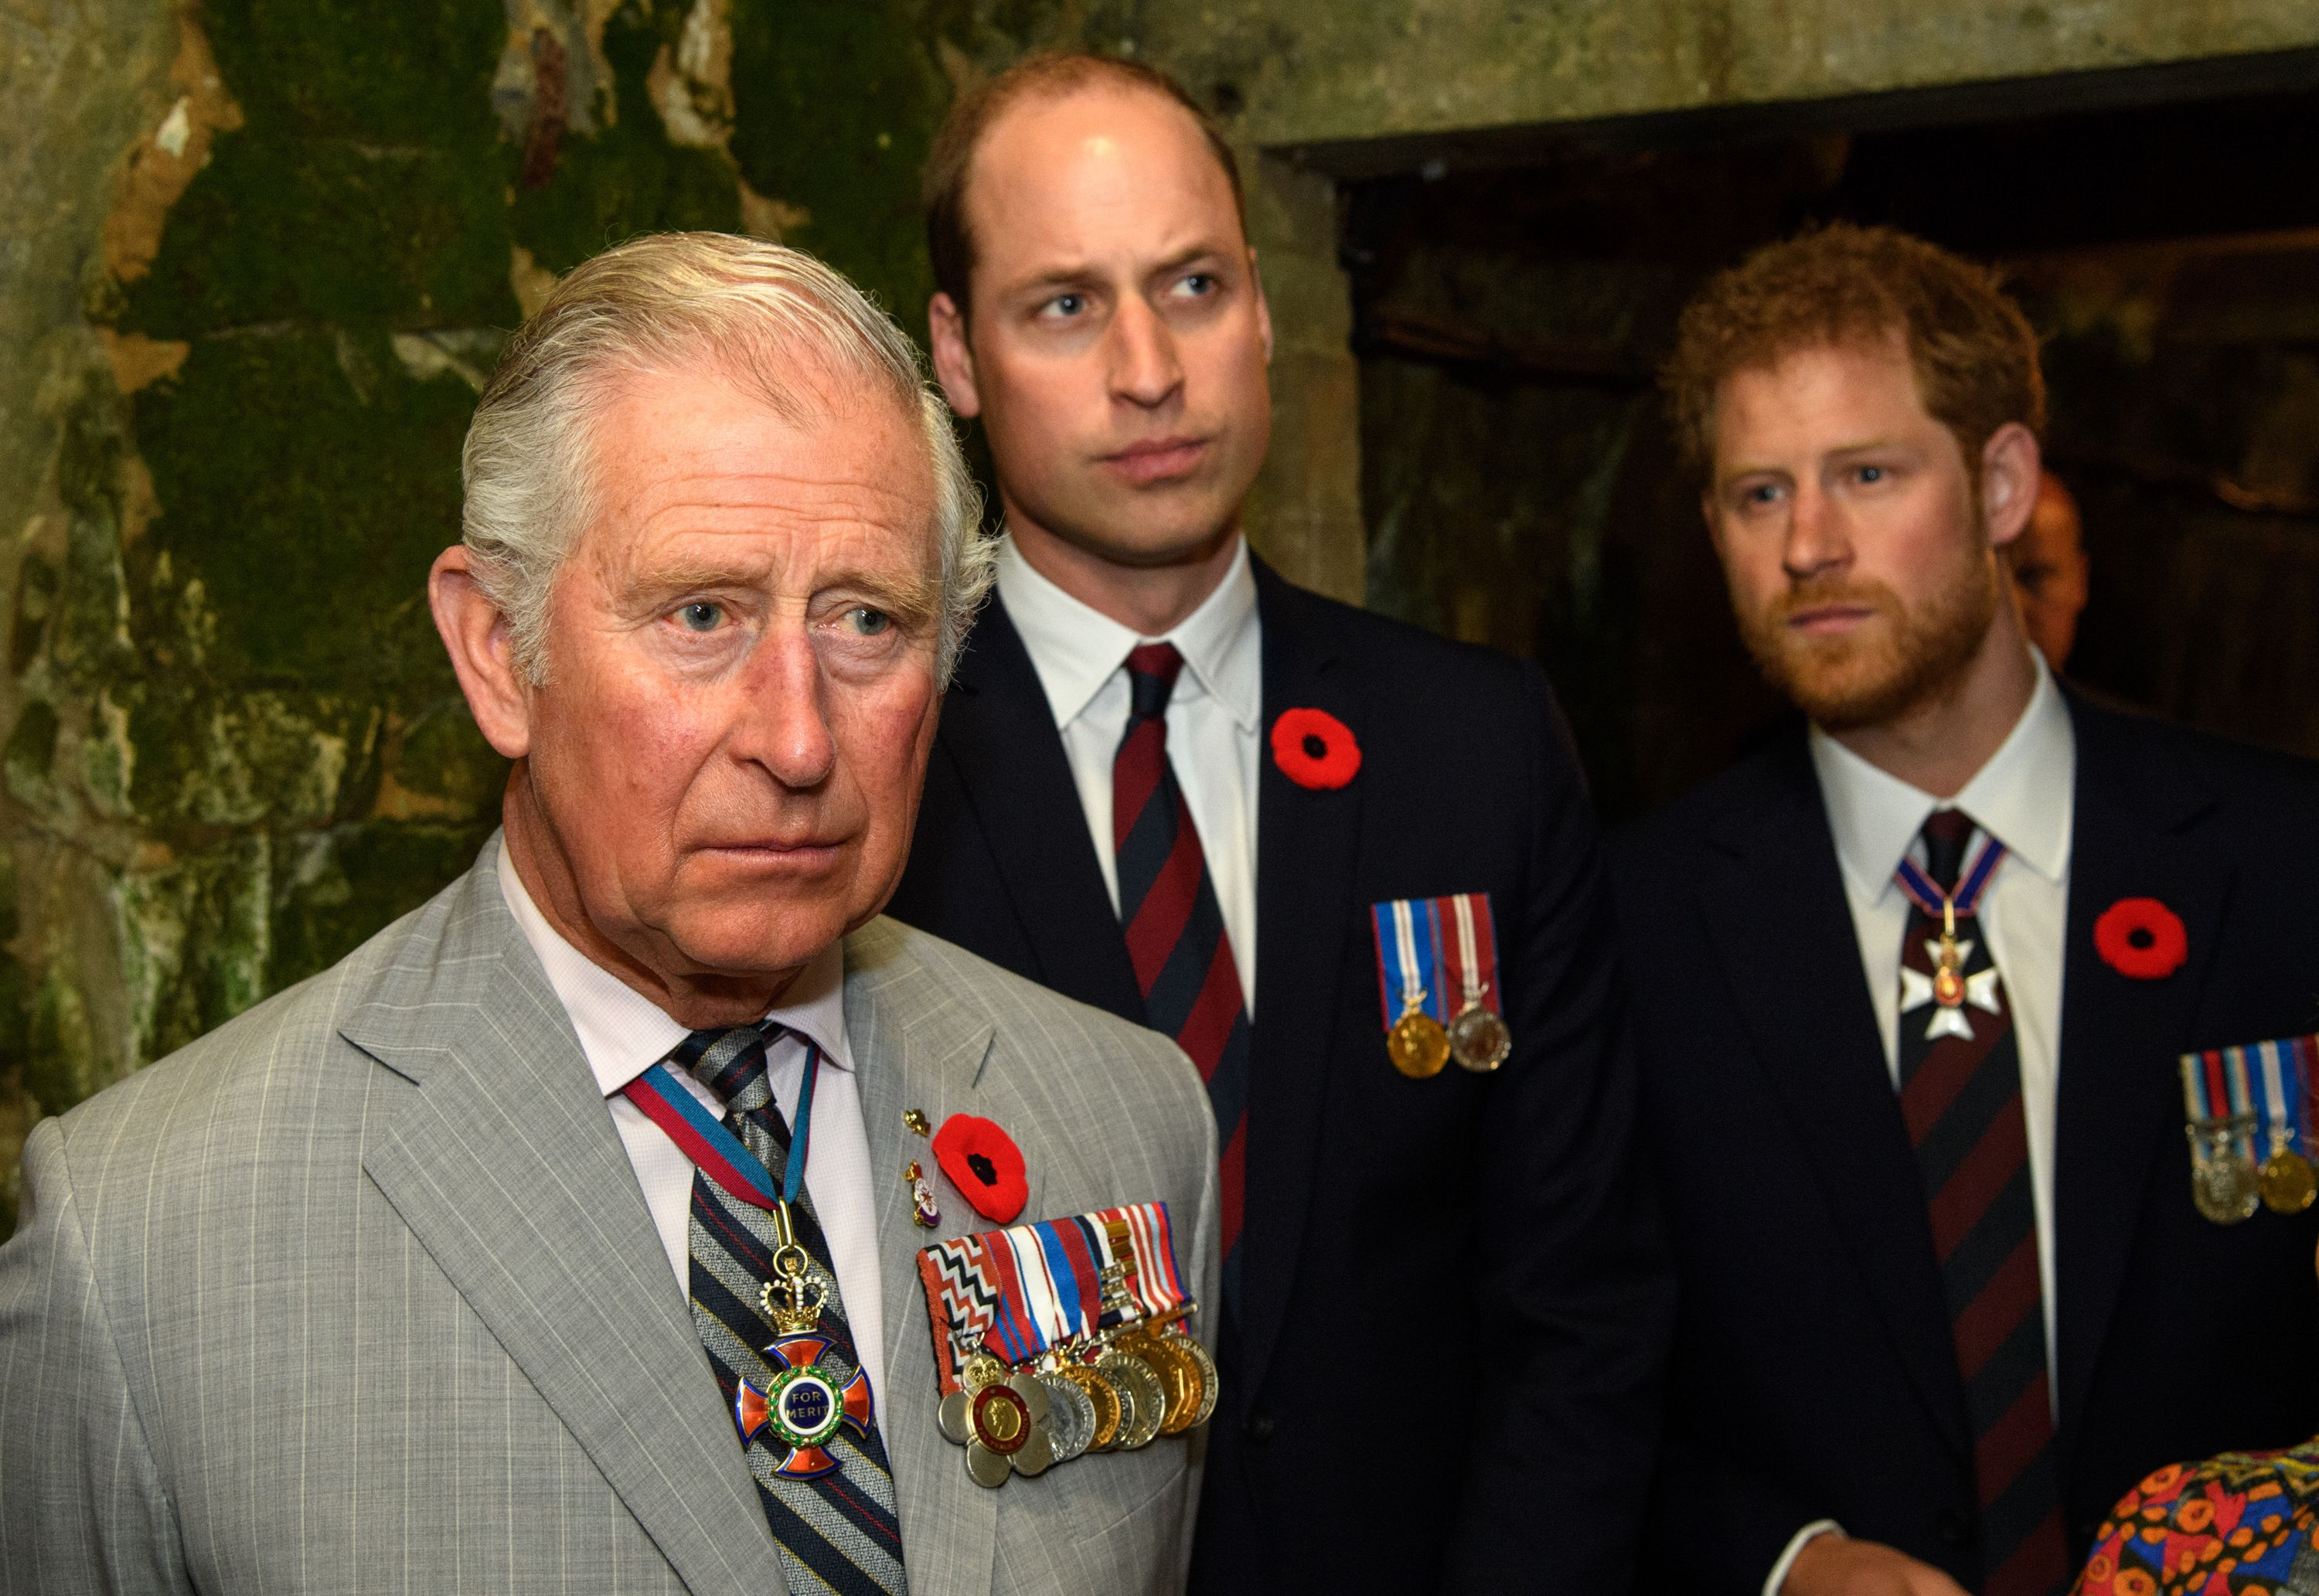 Prince Charles, Prince William, and Prince Harry